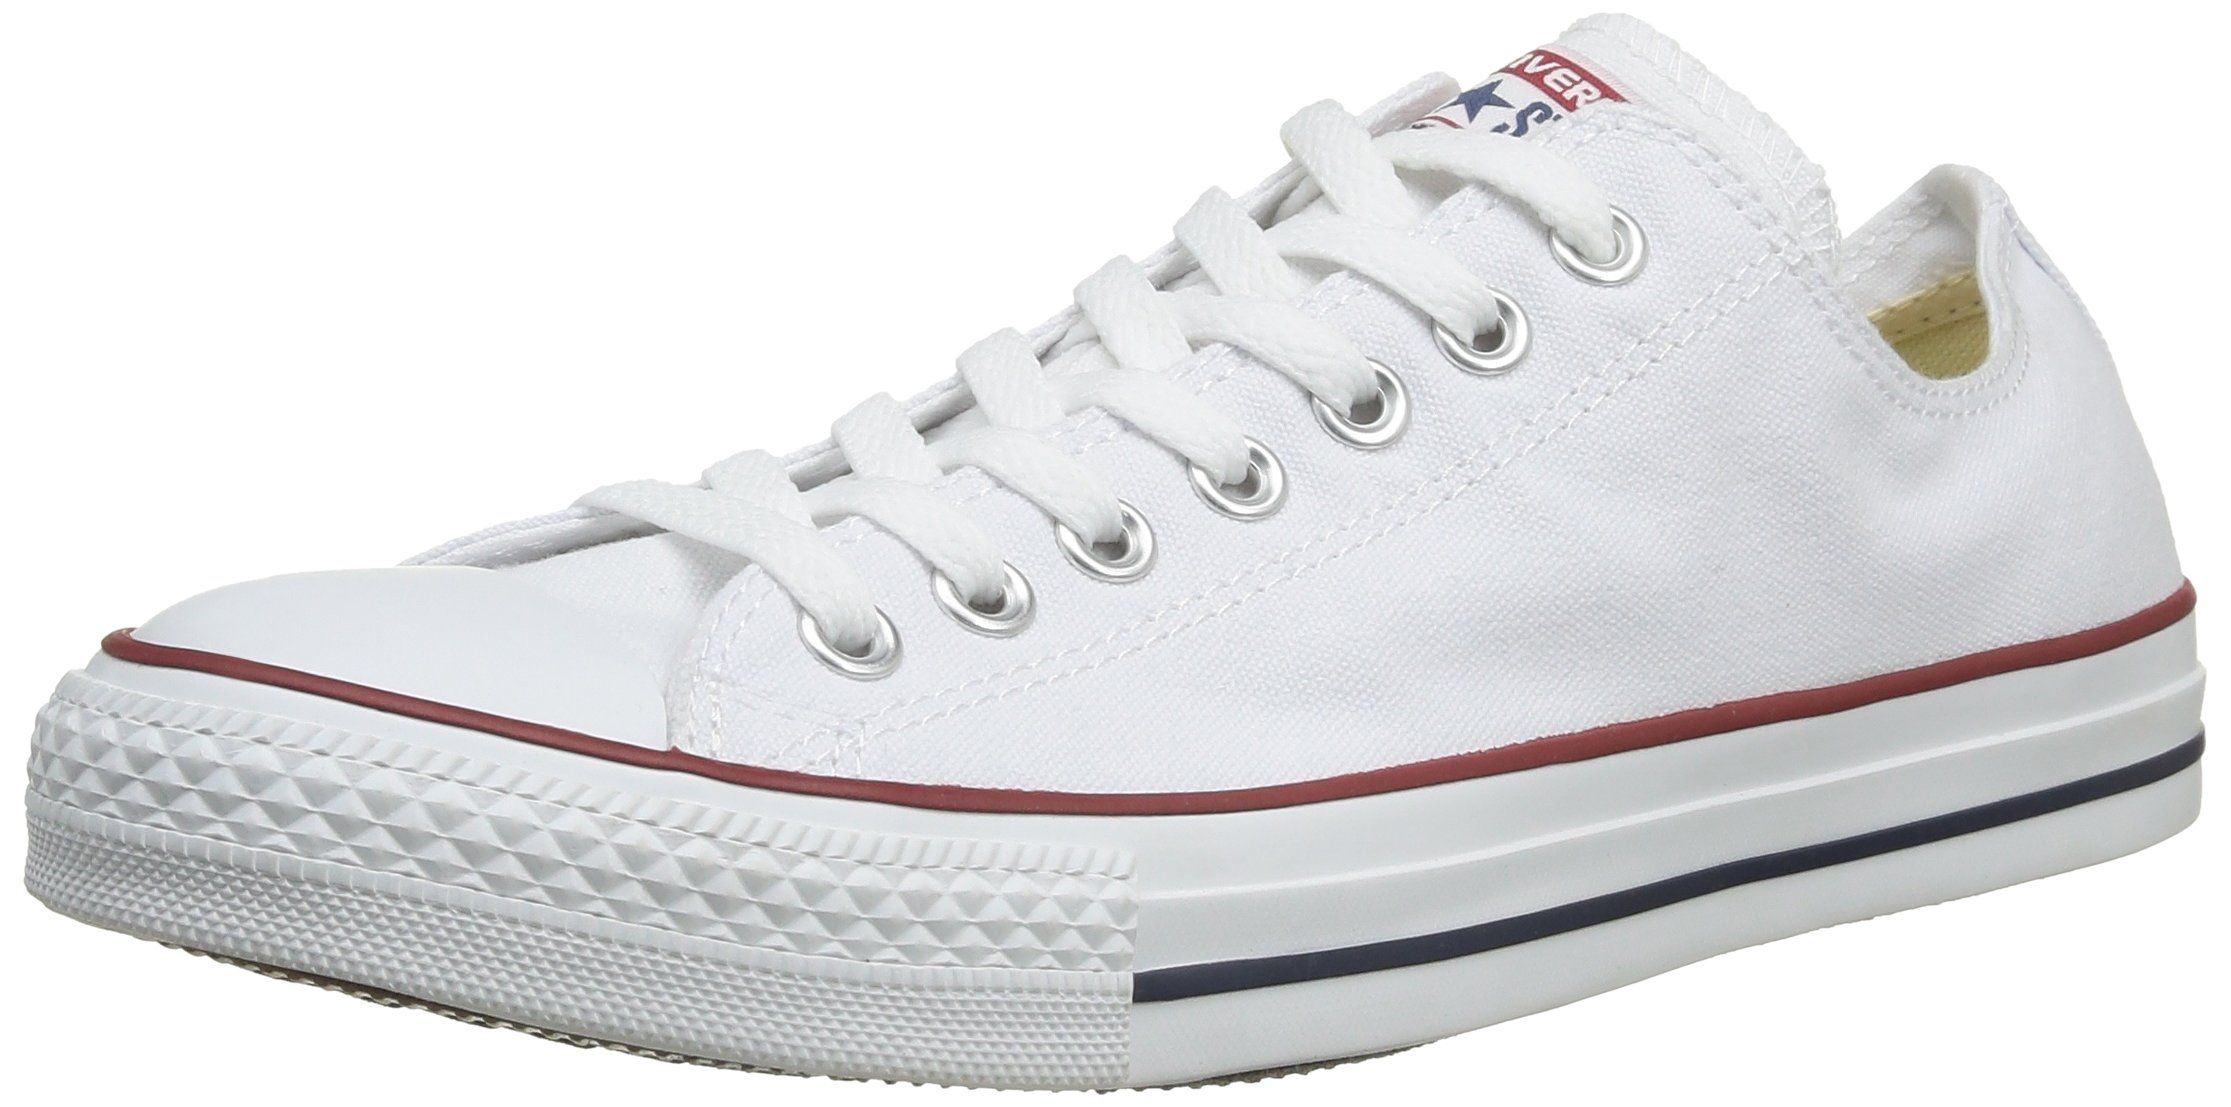 authentisch unisex converse chuck taylor all star ii low